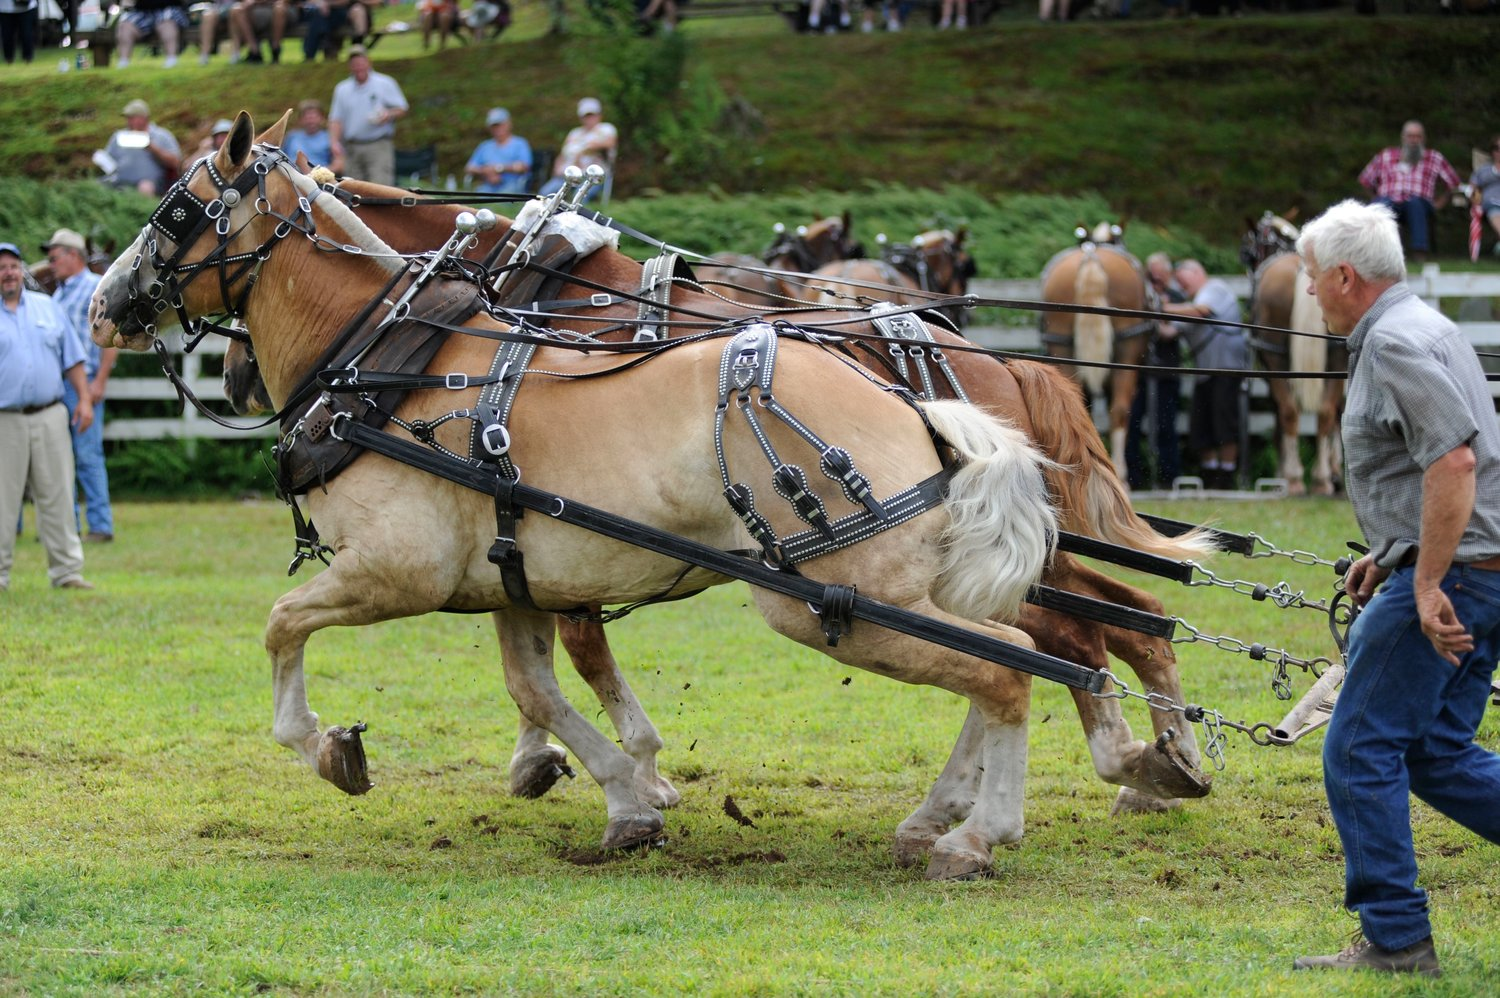 Josh Woolheater of Tannersville, NY encourages his team of draft horses to pour on the horse power.